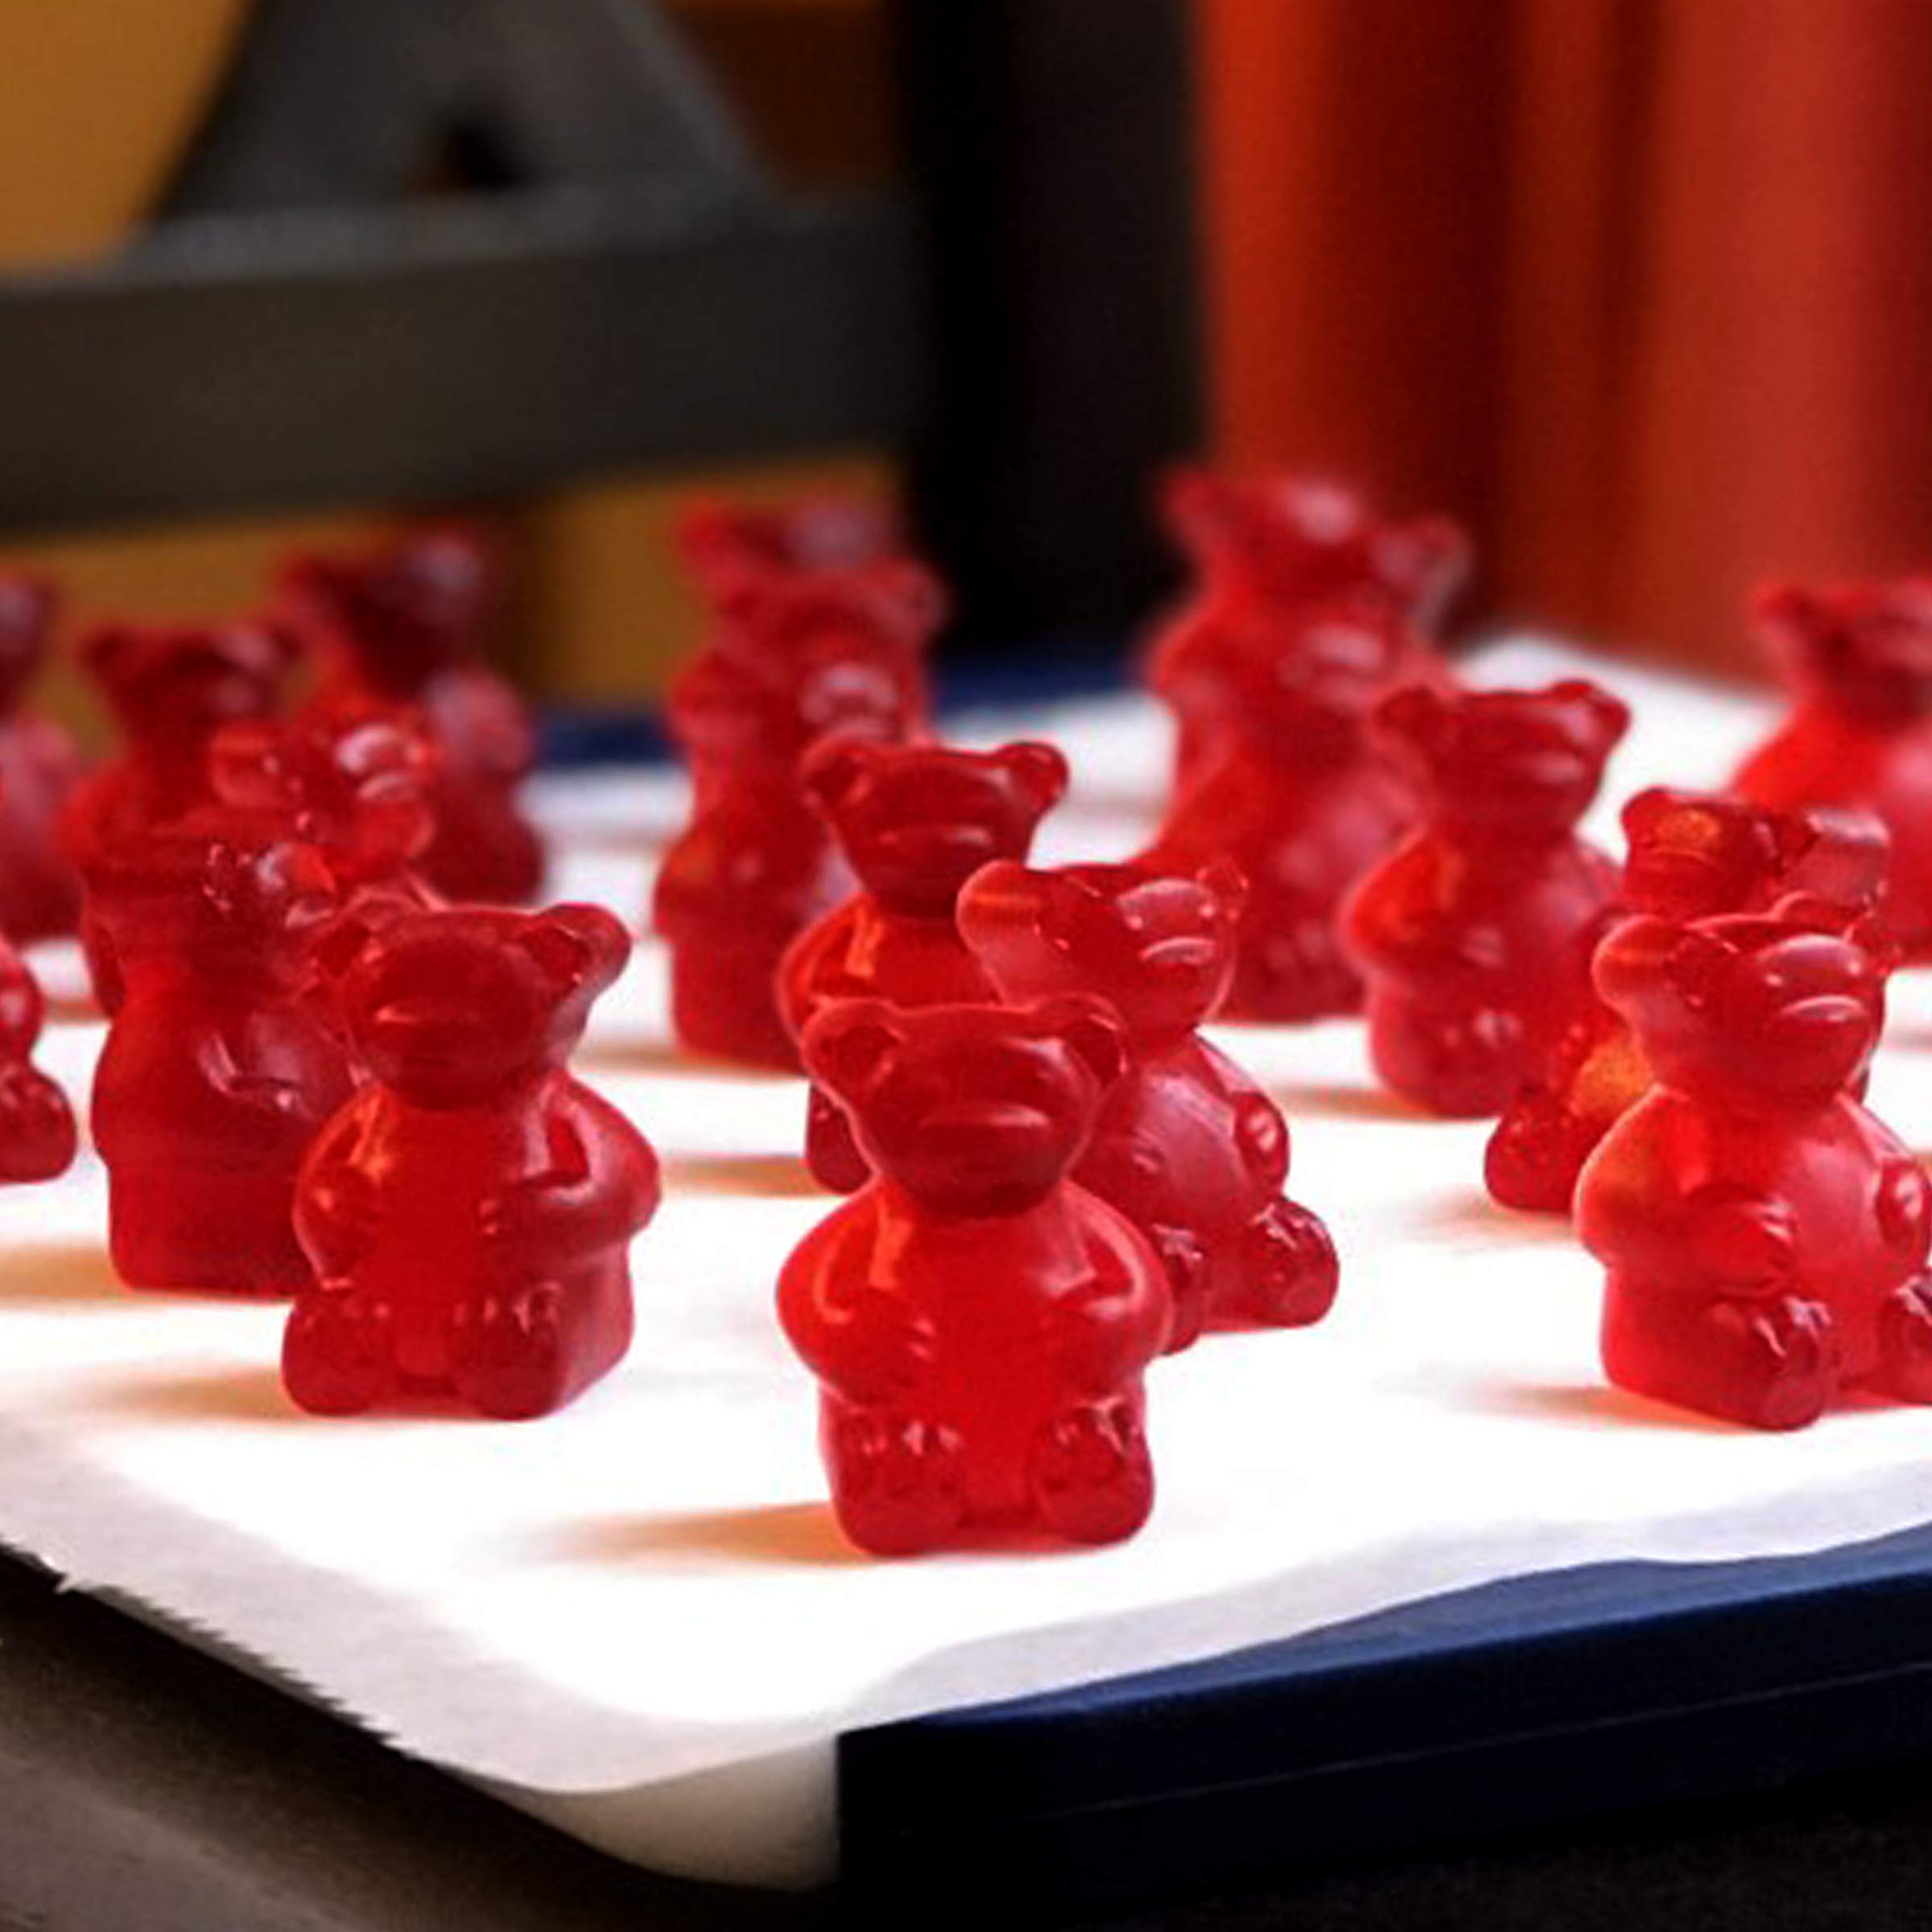 MEDIUM size GUMMY BEAR Mold with BONUS Pinch & Pour Cup + Dropper - by the Modern Gummy; Gelatin GUMMY Recipe on Package & FULL RECIPE PDF via EMAIL, PROFESSIONAL GRADE PURE LFGB SILICONE by The Modern Gummy (Image #6)